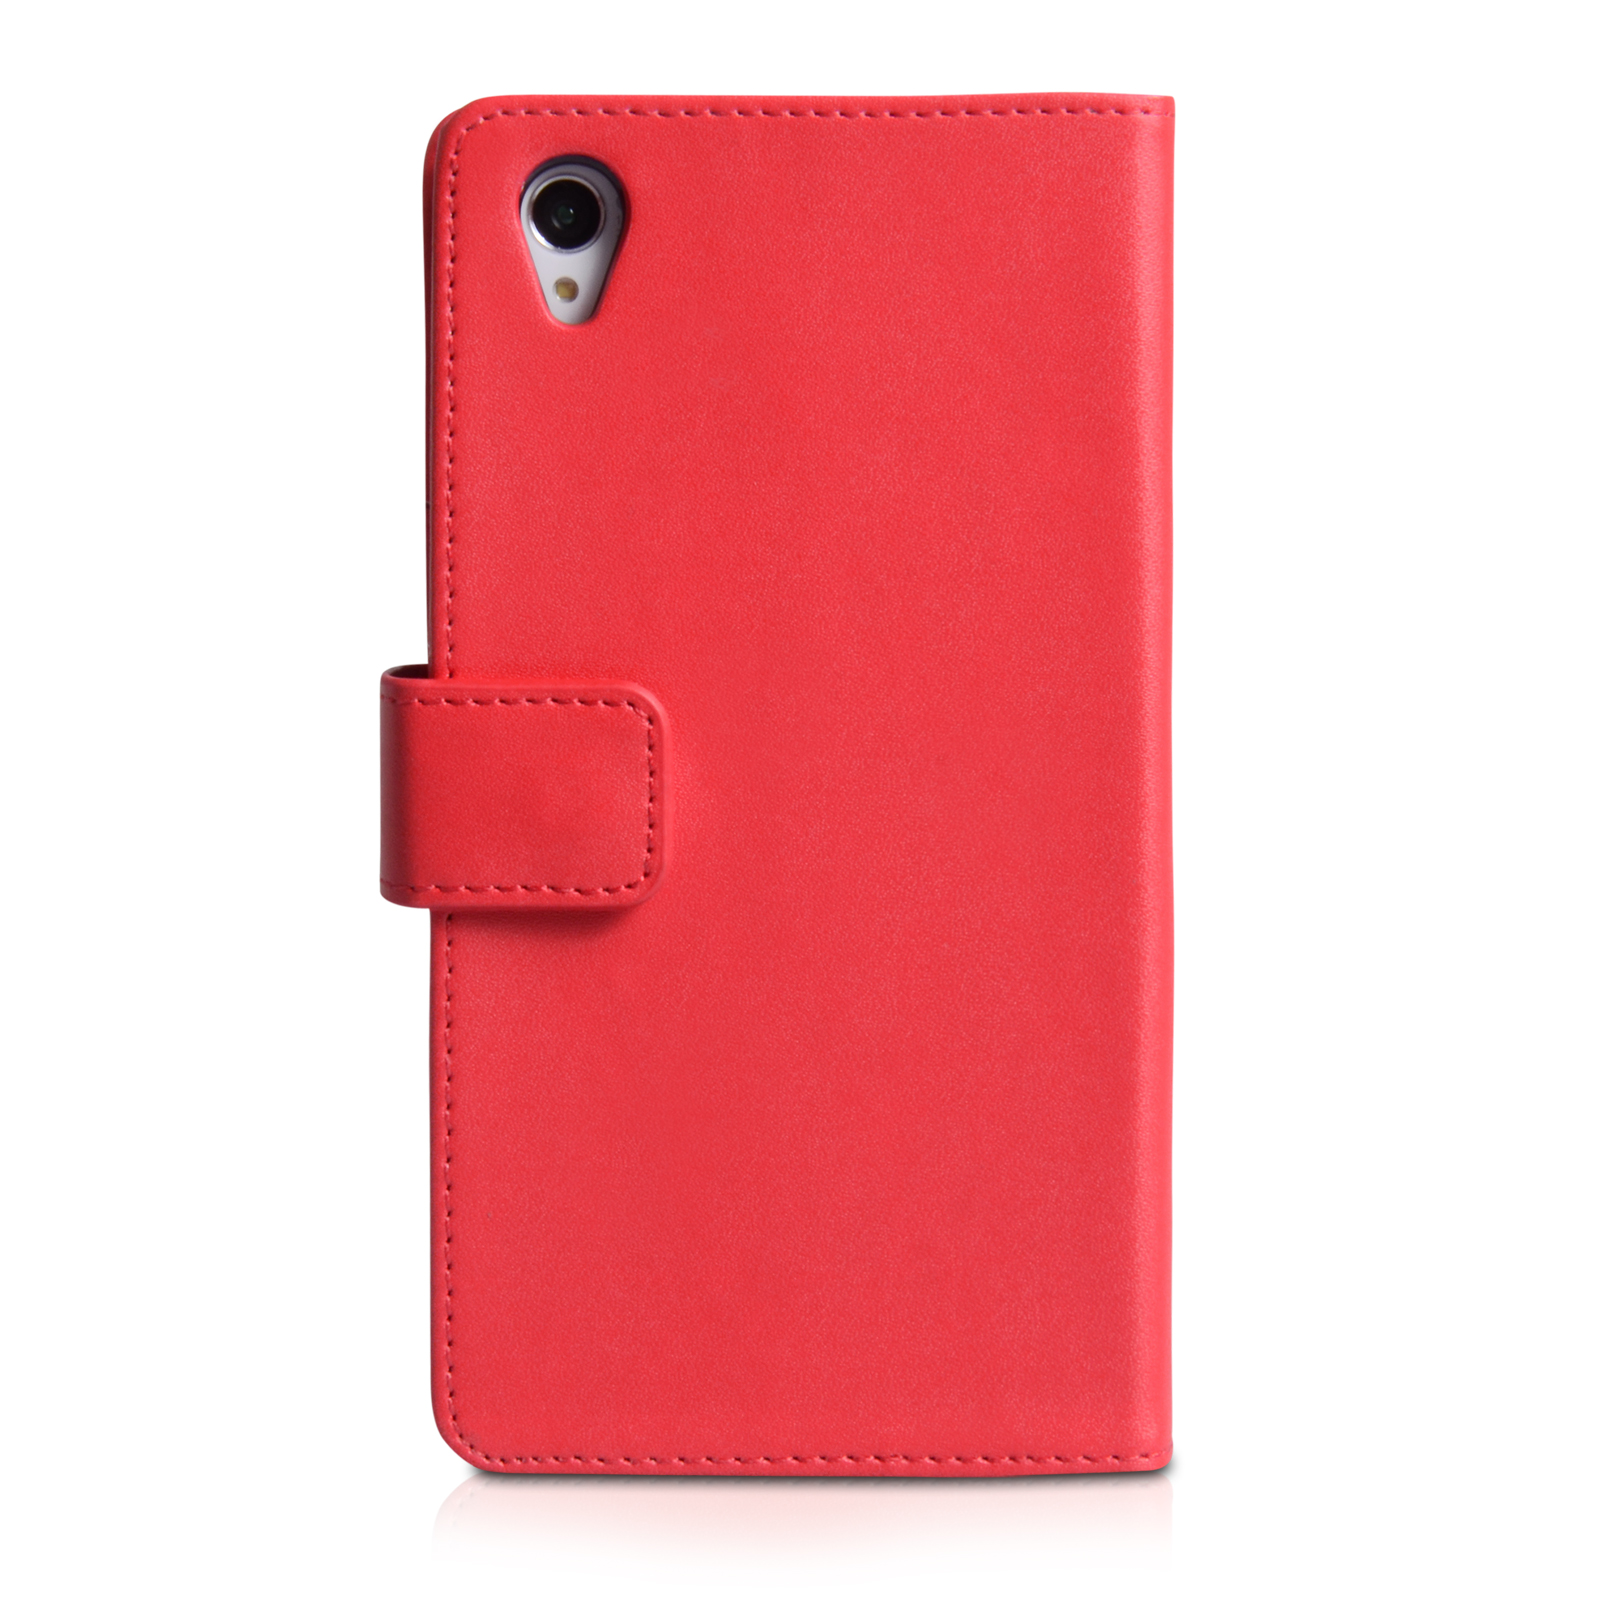 42f6bc5f2576 ... Yousave Accessories Sony Xperia Z2 Leather-Effect Wallet Case - Red ...